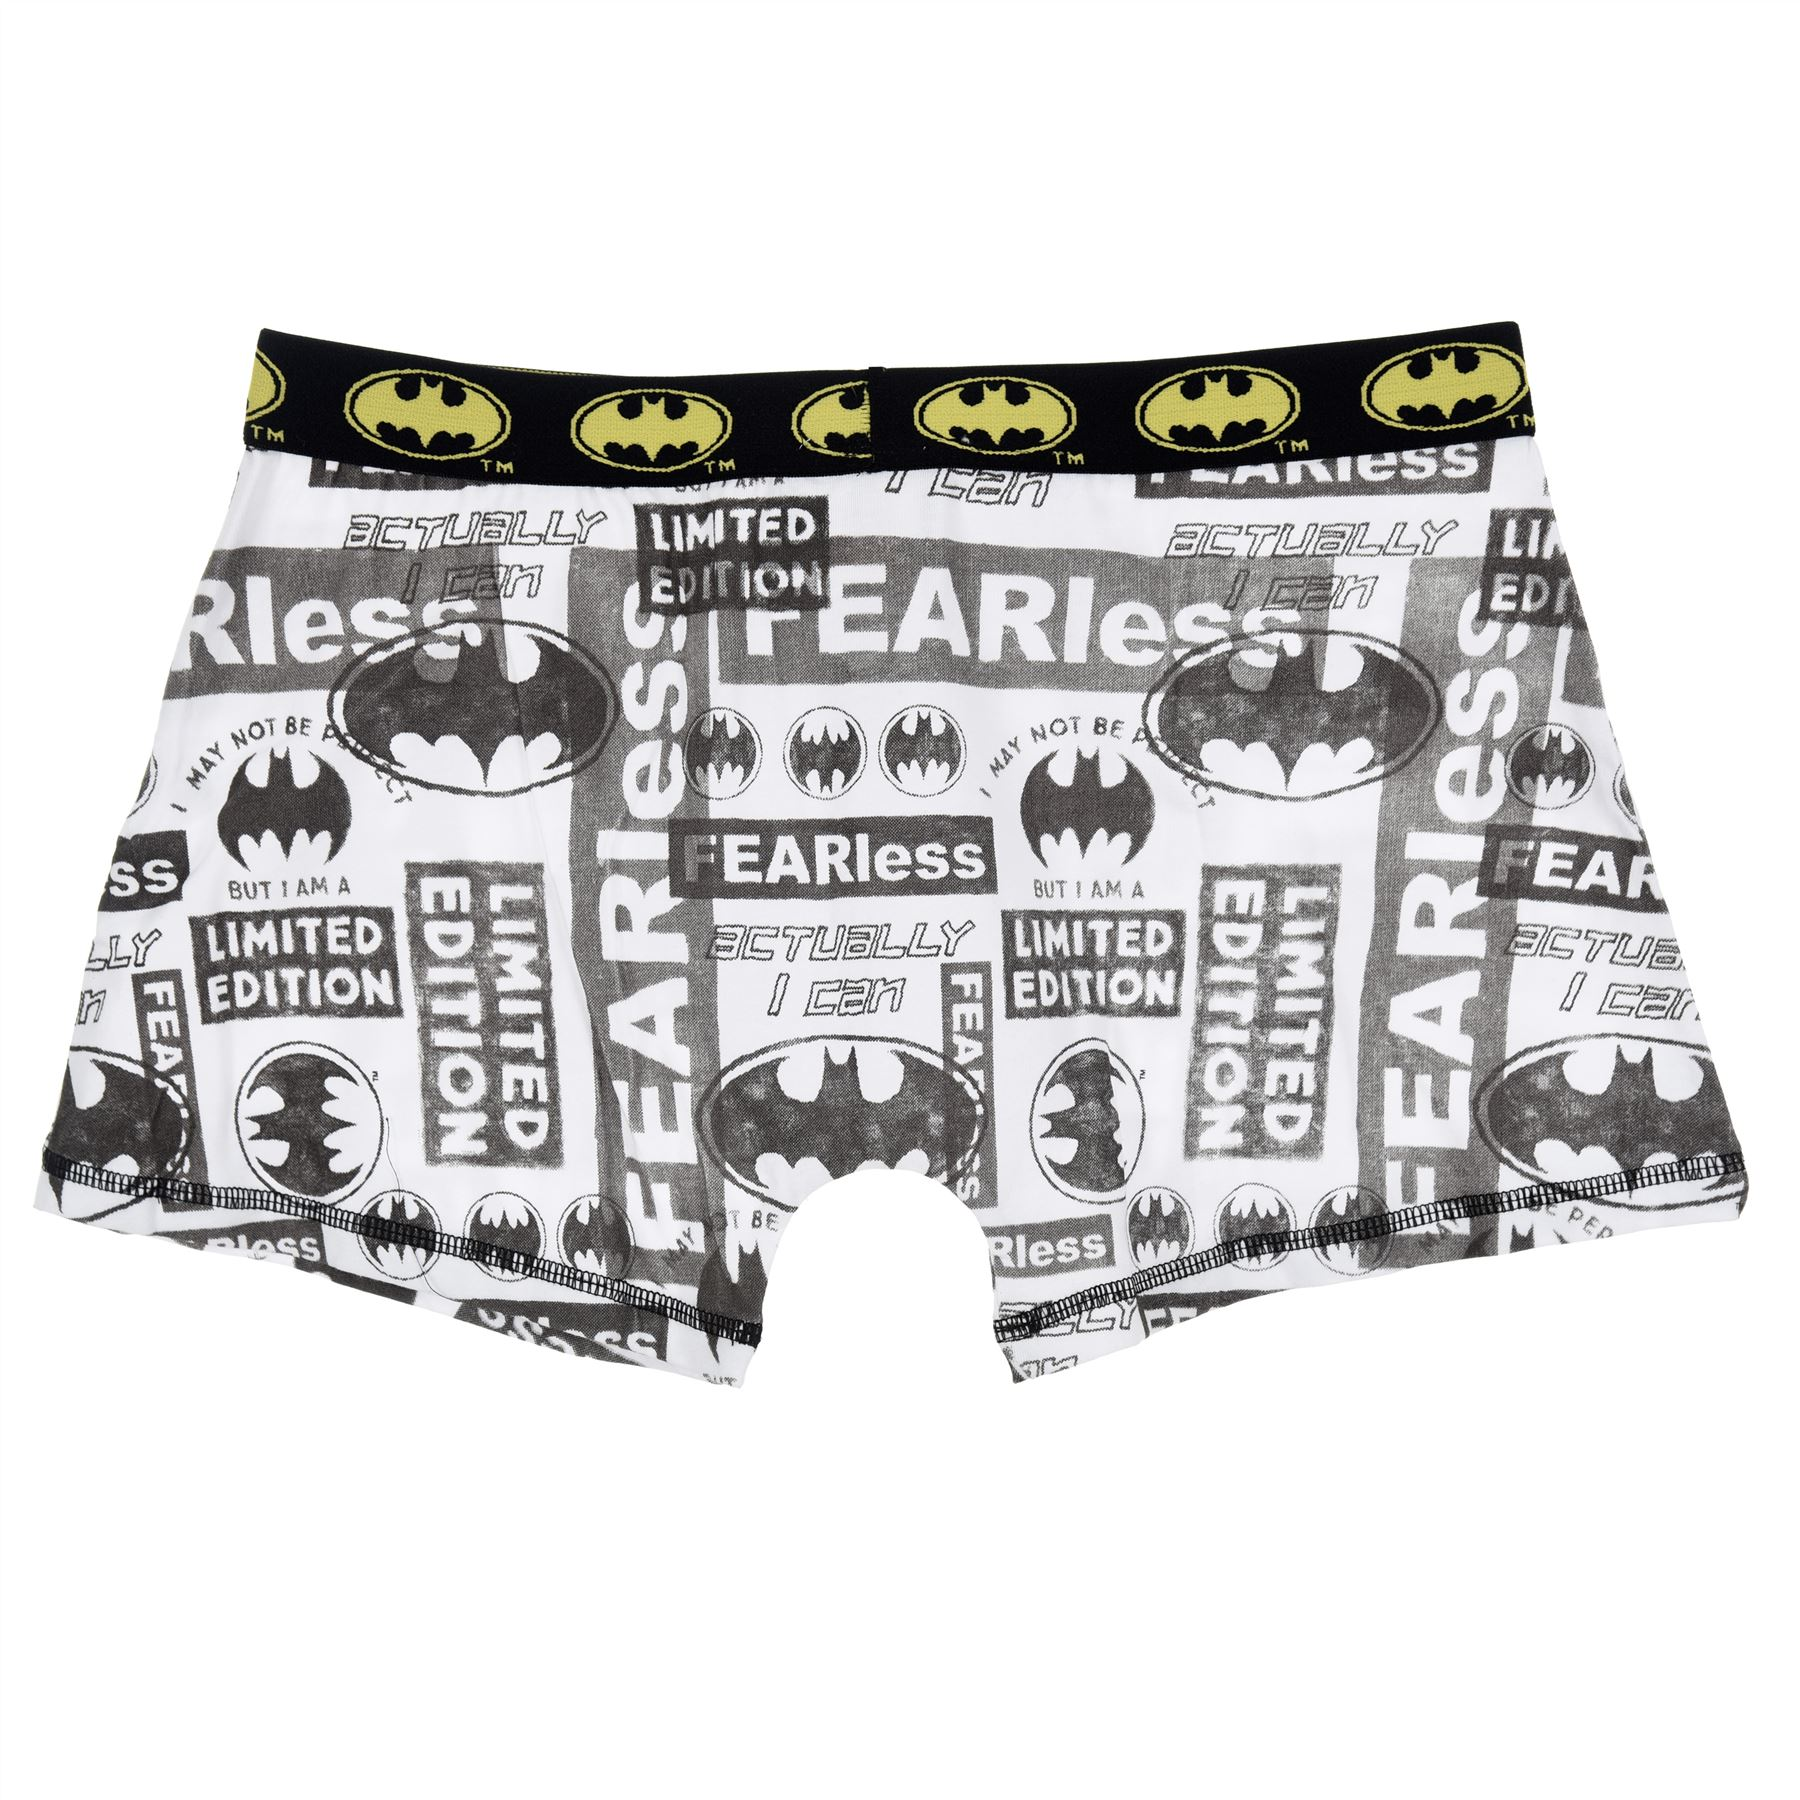 Mens-Official-Character-Trunks-Boxer-Shorts-Boxers-Underwear-2-Pack-Size-S-XL thumbnail 6